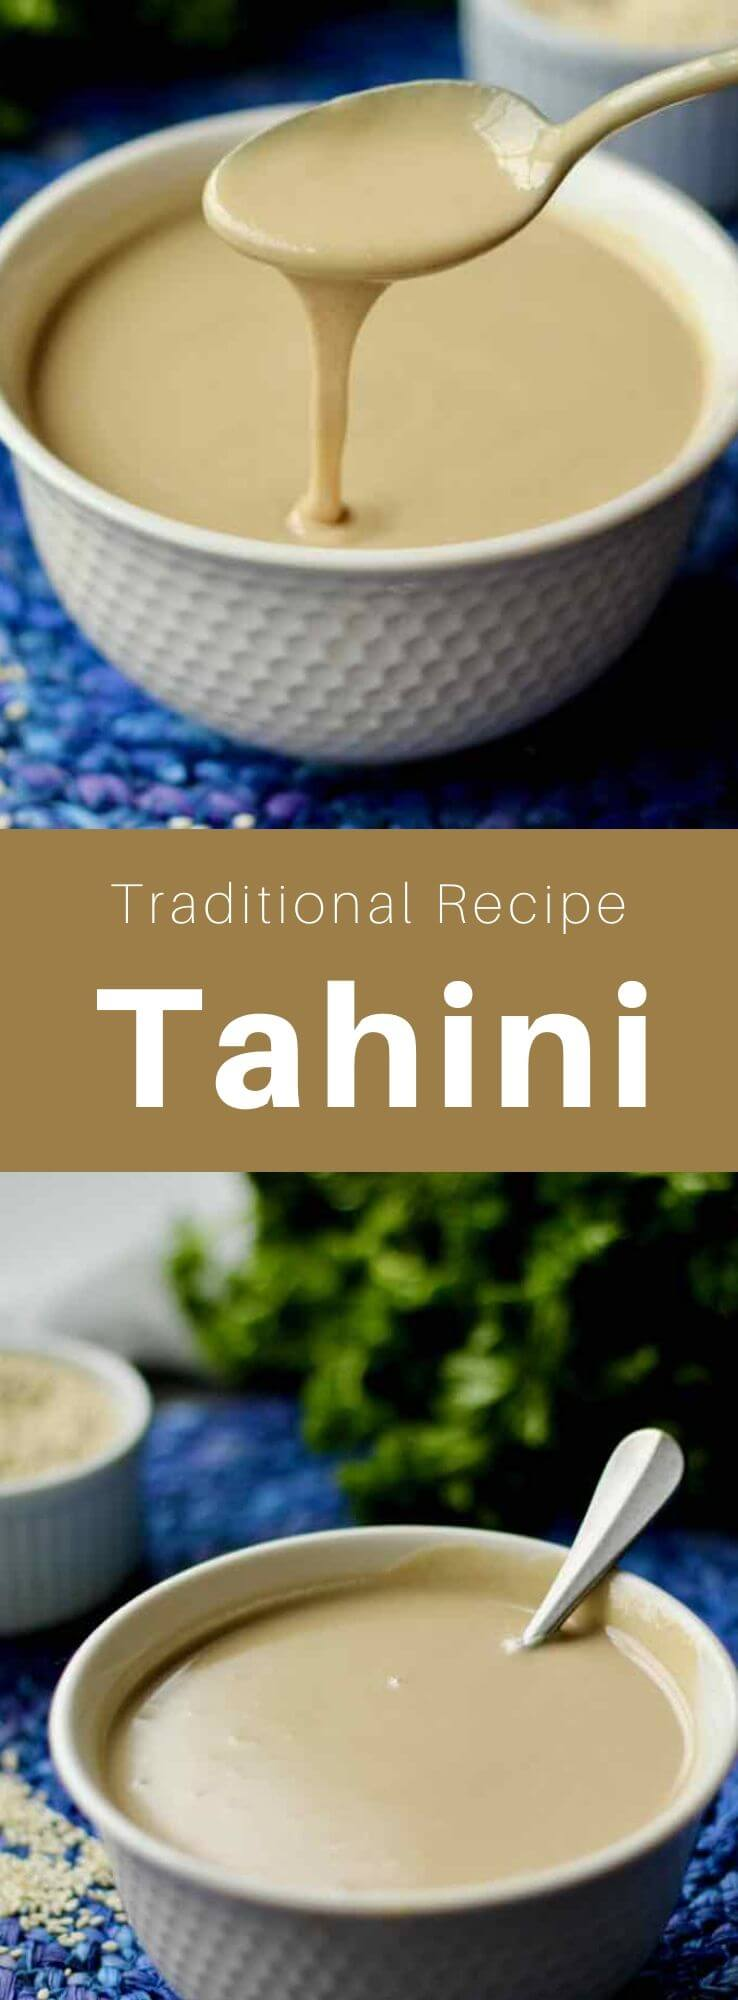 Tahini or tahina (طحينة) is a paste of crushed sesame seeds that is used in the cuisines of the Levant and the Eastern Mediterranean, the South Caucasus, and in certain parts of North Africa. #MiddleEastern #Levantine #MiddleEast #Levant #MiddleEasternRecipe #LevantineRecipe #MiddleEasternFood #LevantineFood #MiddleEasternCuisine #LevantineCuisine #WorldCuisine #196flavors